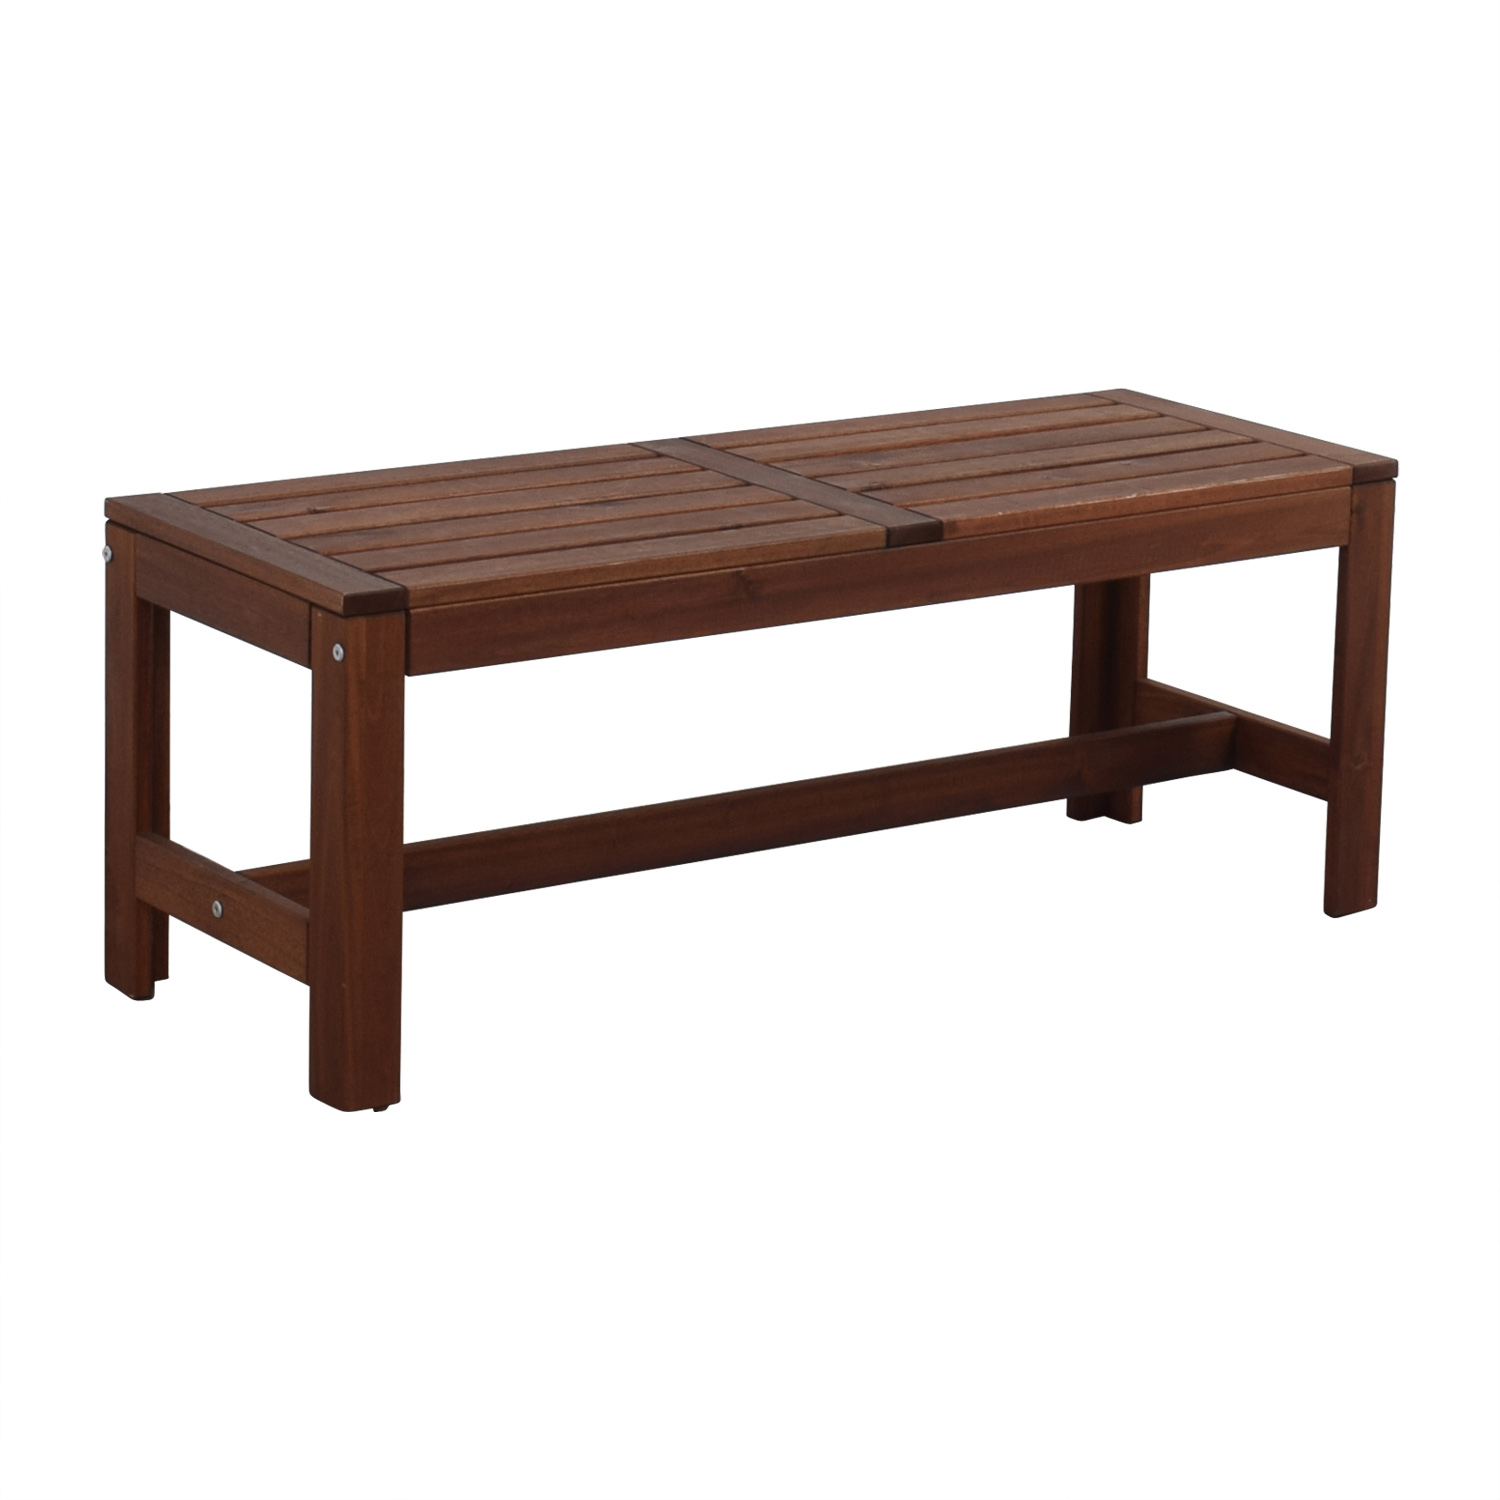 Brilliant 73 Off Downtown Furniture Wooden Bench Chairs Lamtechconsult Wood Chair Design Ideas Lamtechconsultcom